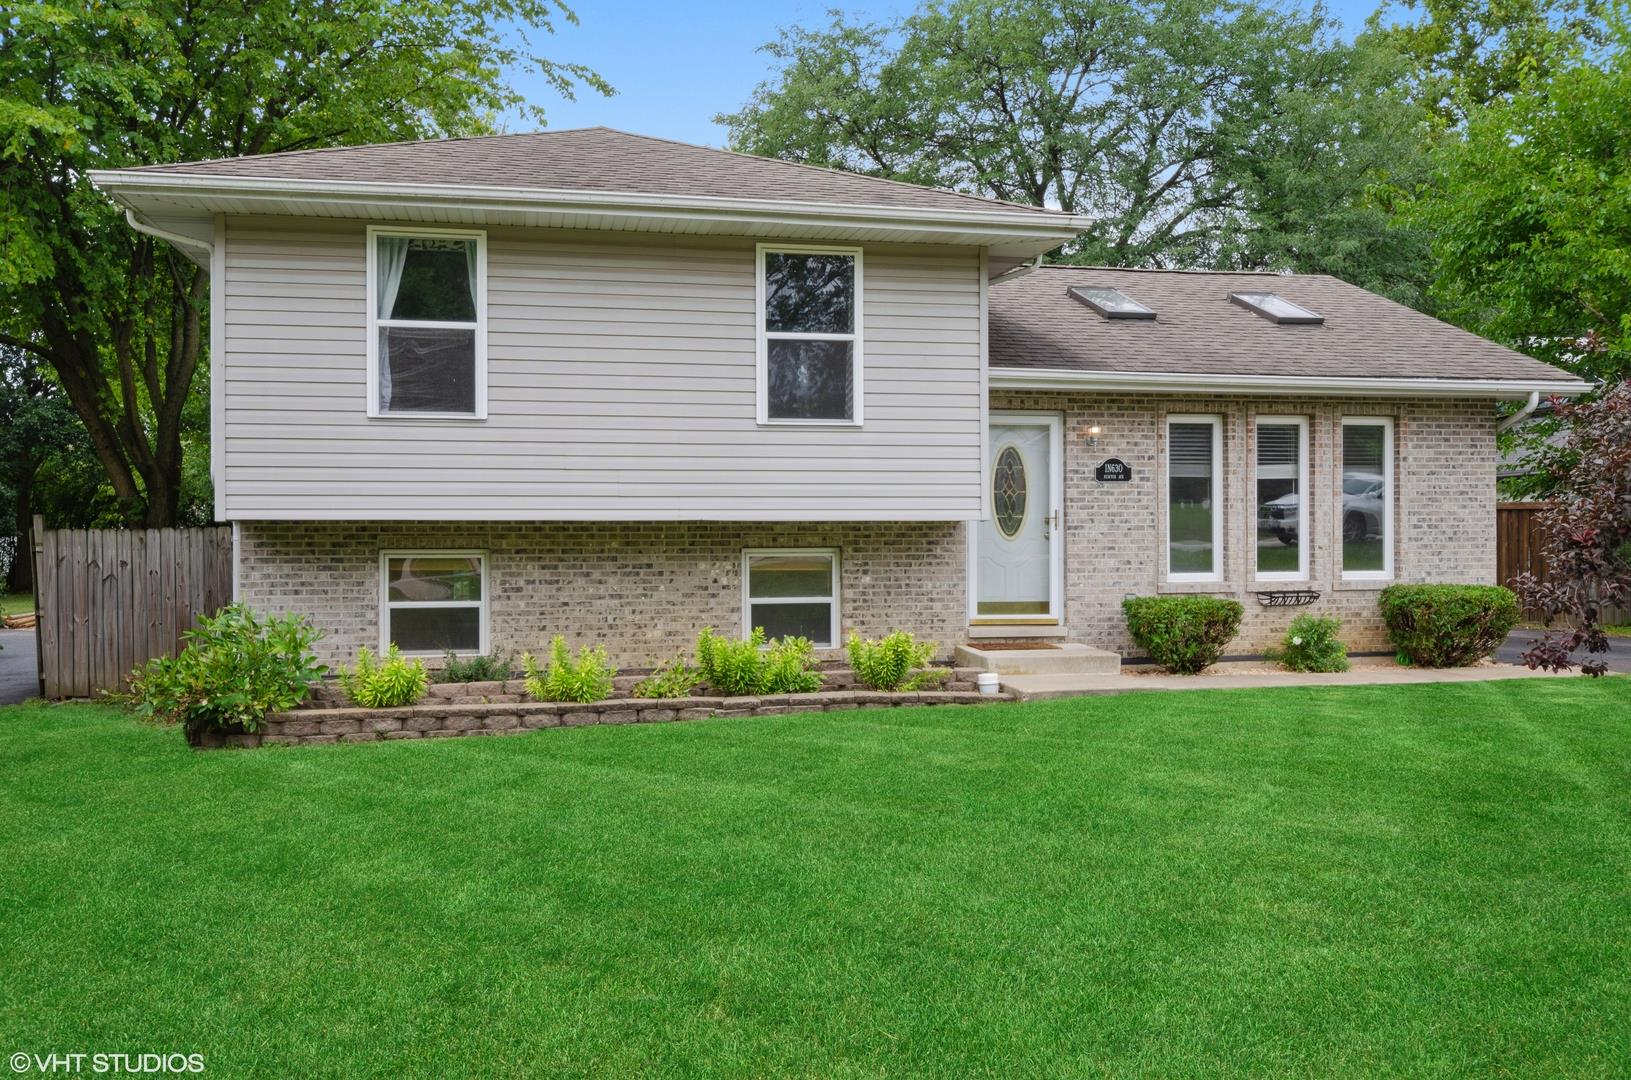 1N630 NEWTON Avenue, Glen Ellyn, IL 60137 - #: 10855690